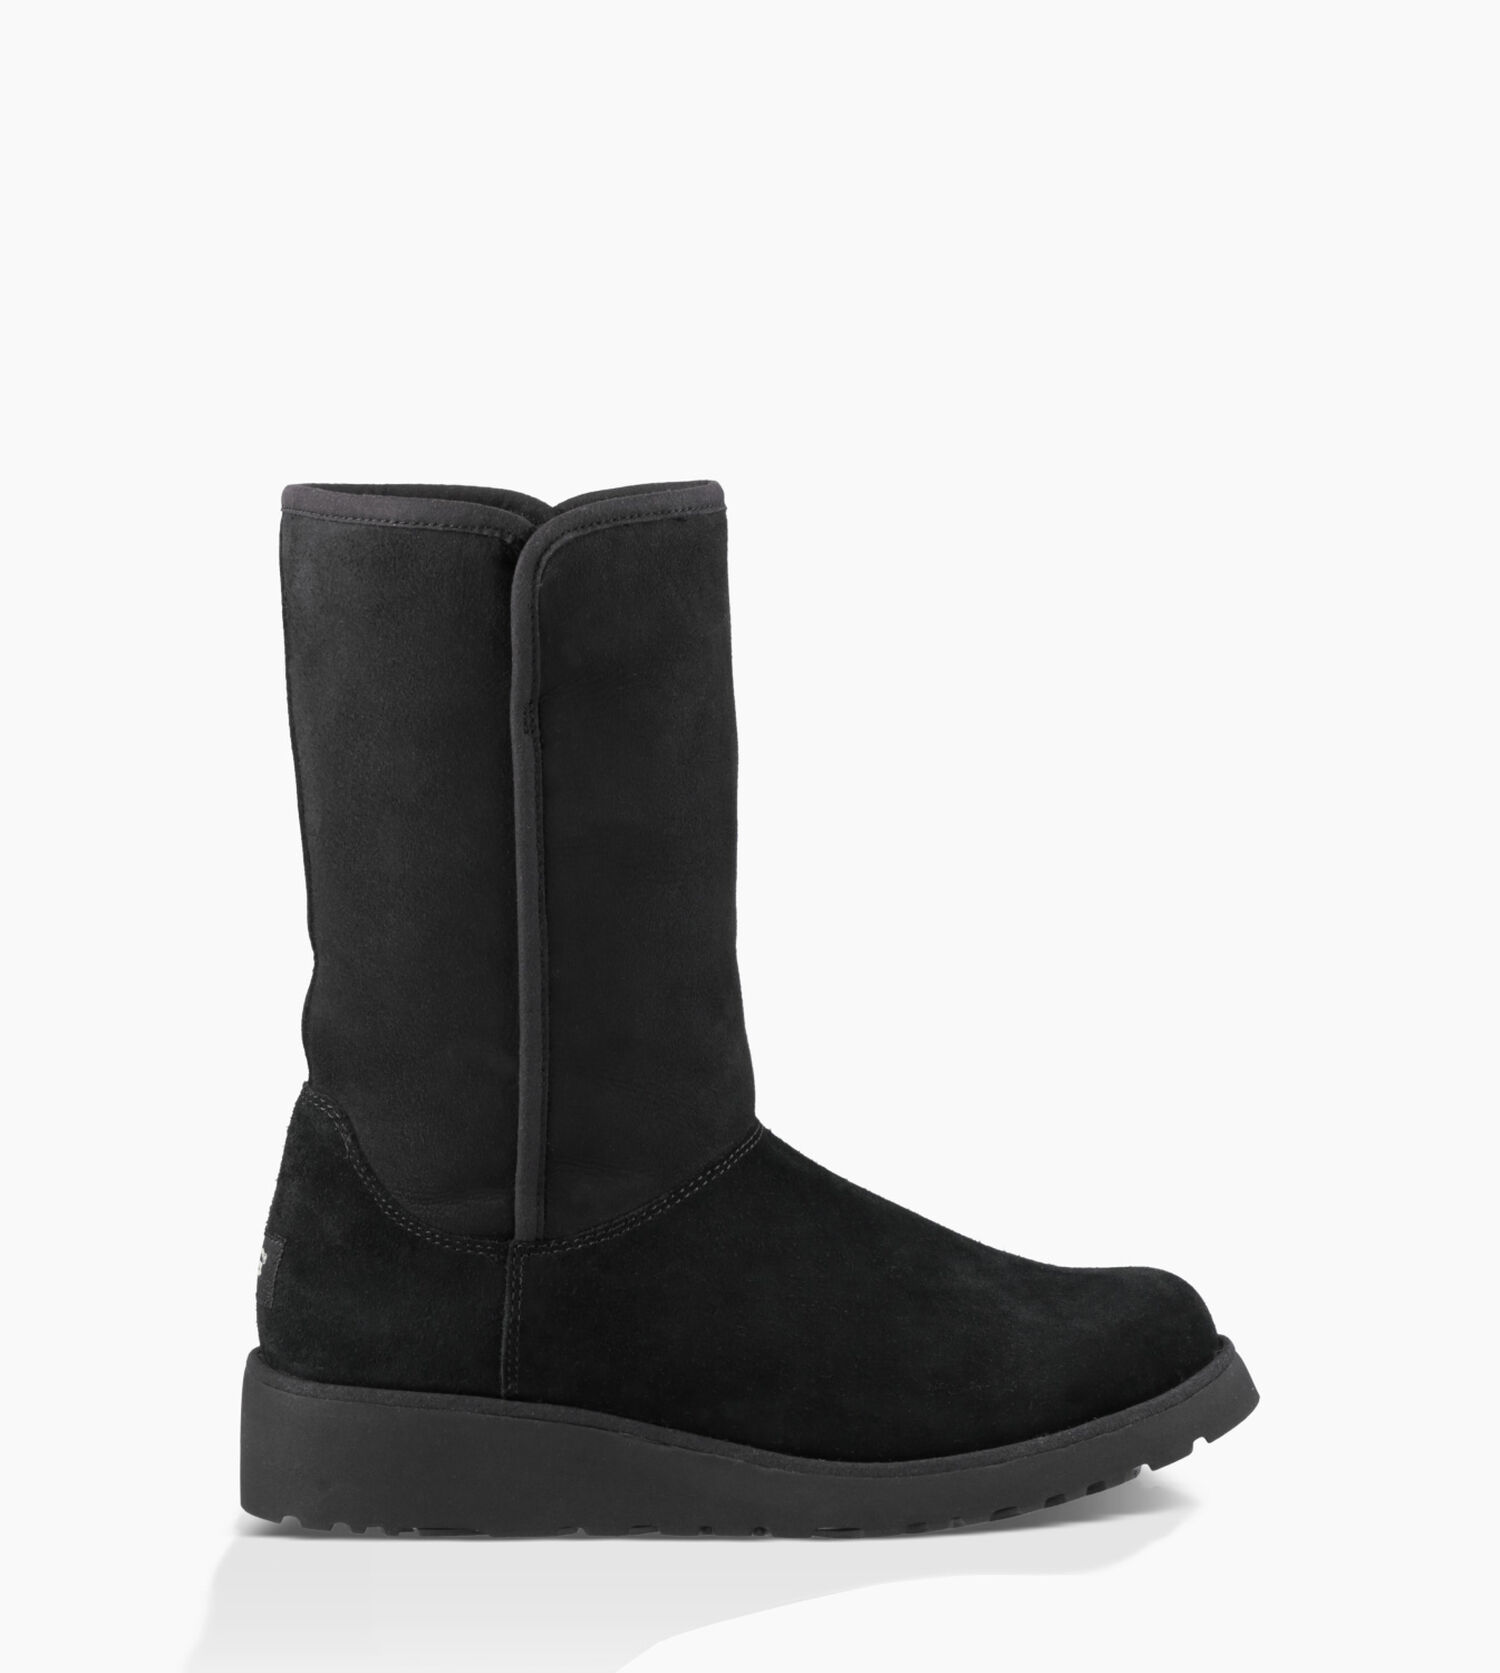 cb335358279 Women's Amie Boot | UGG® Official